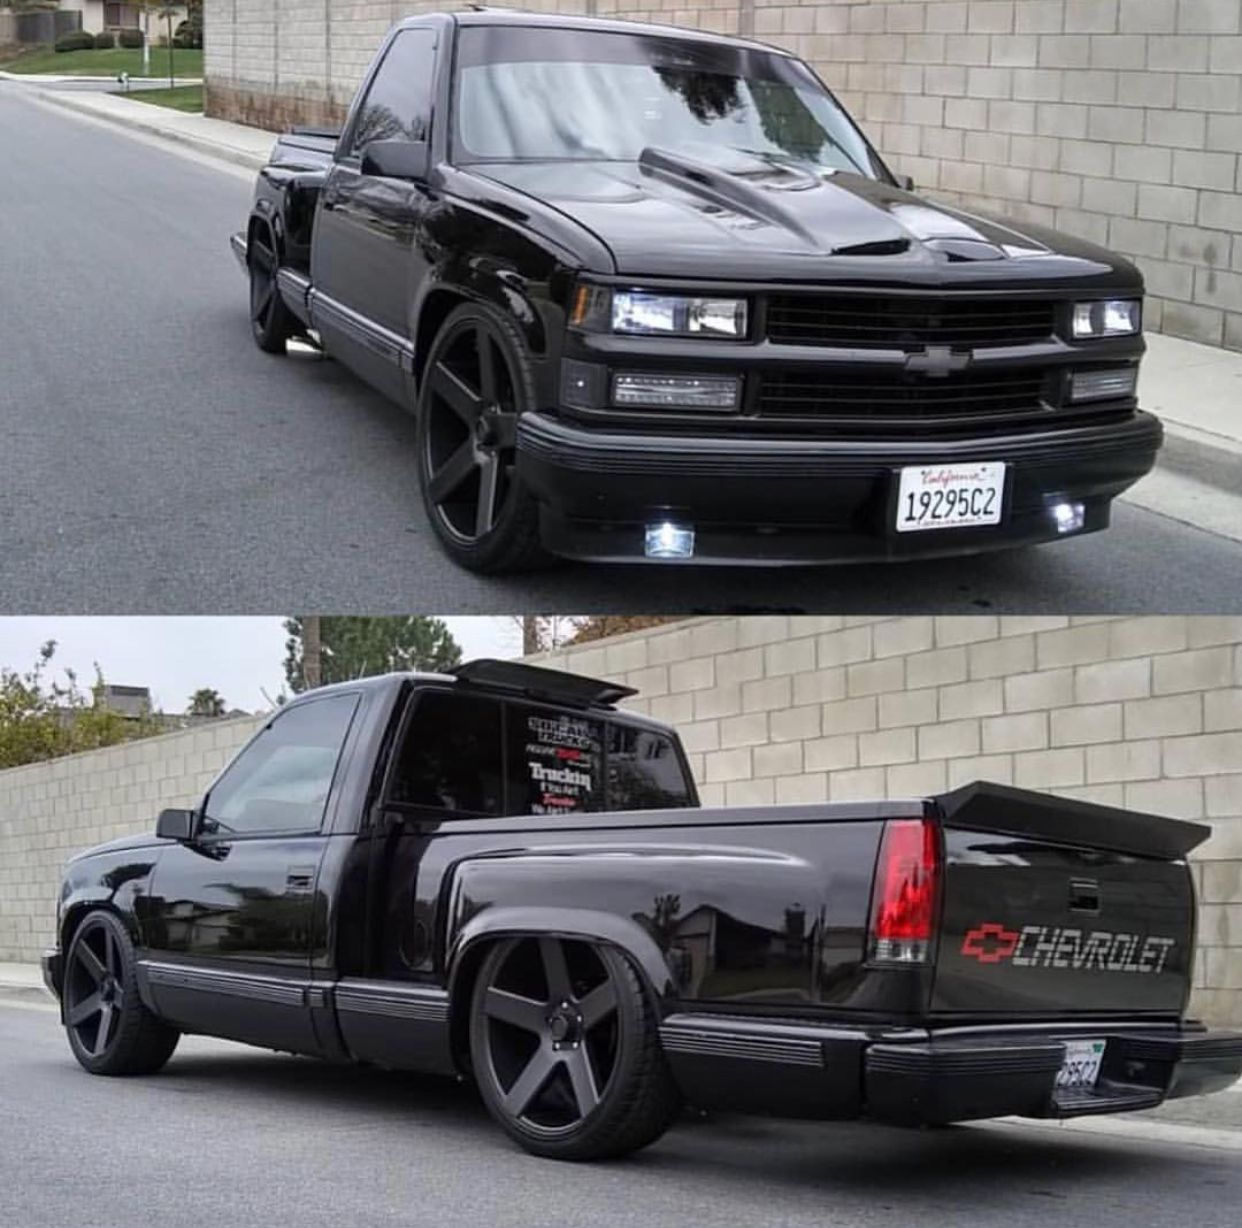 Custom Chevy Trucks, Dropped Trucks, Chevy Pickup